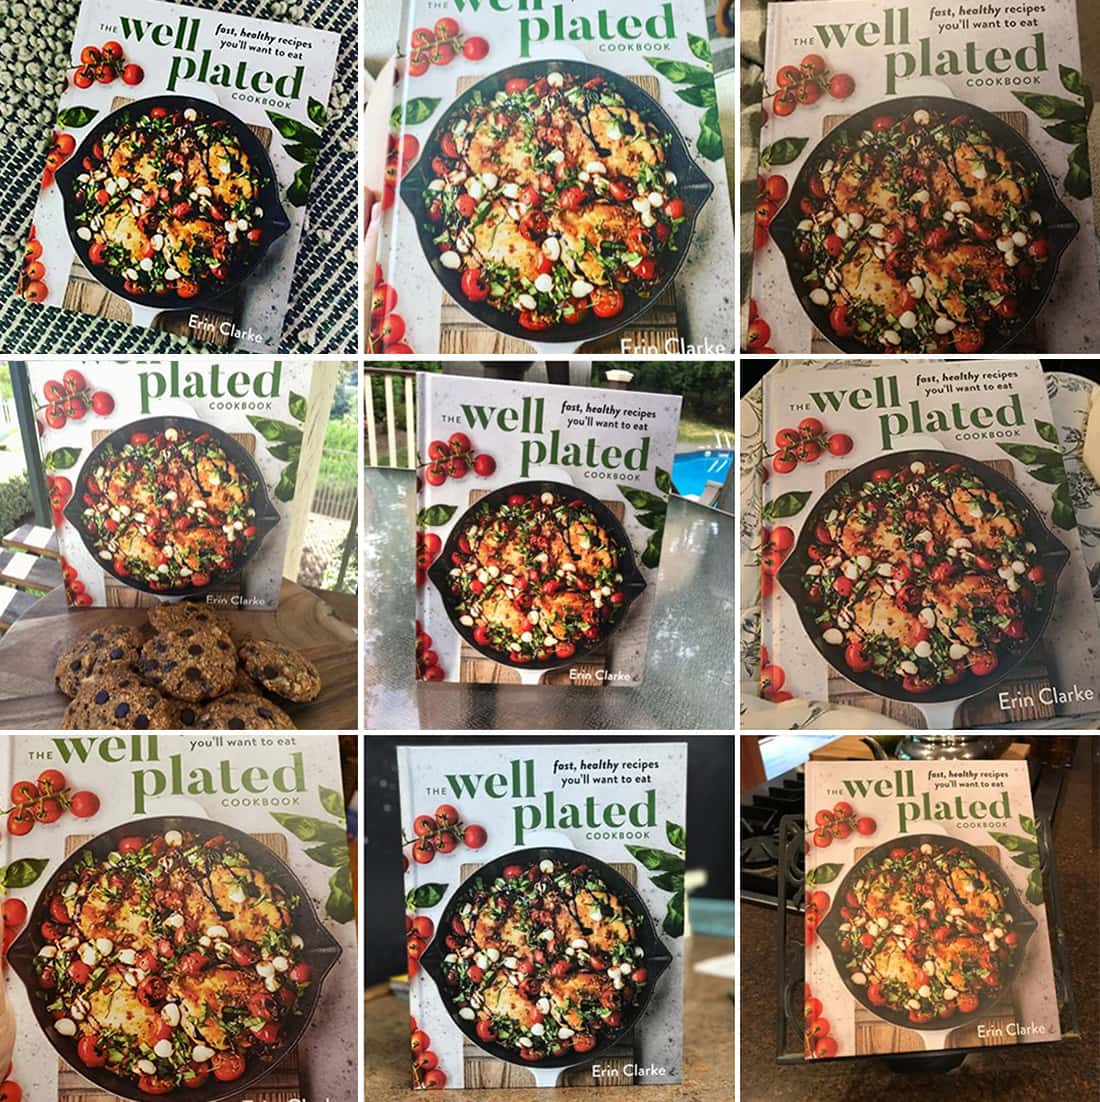 #WellPlatedCookbook Collage